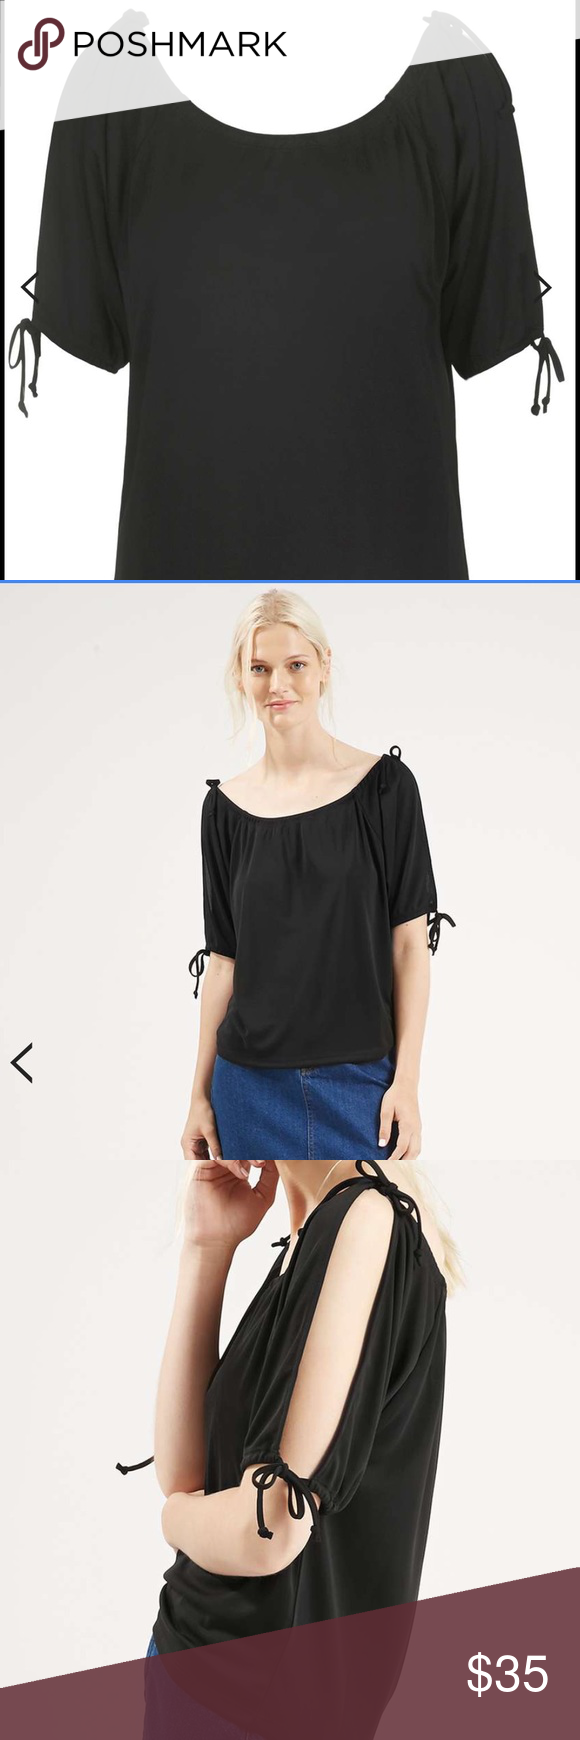 Topshop Top Relaxed top. Ties at the shoulders and sleeves for a contemporary silhouette. 100% Polyester. Machine wash. Topshop Tops Blouses